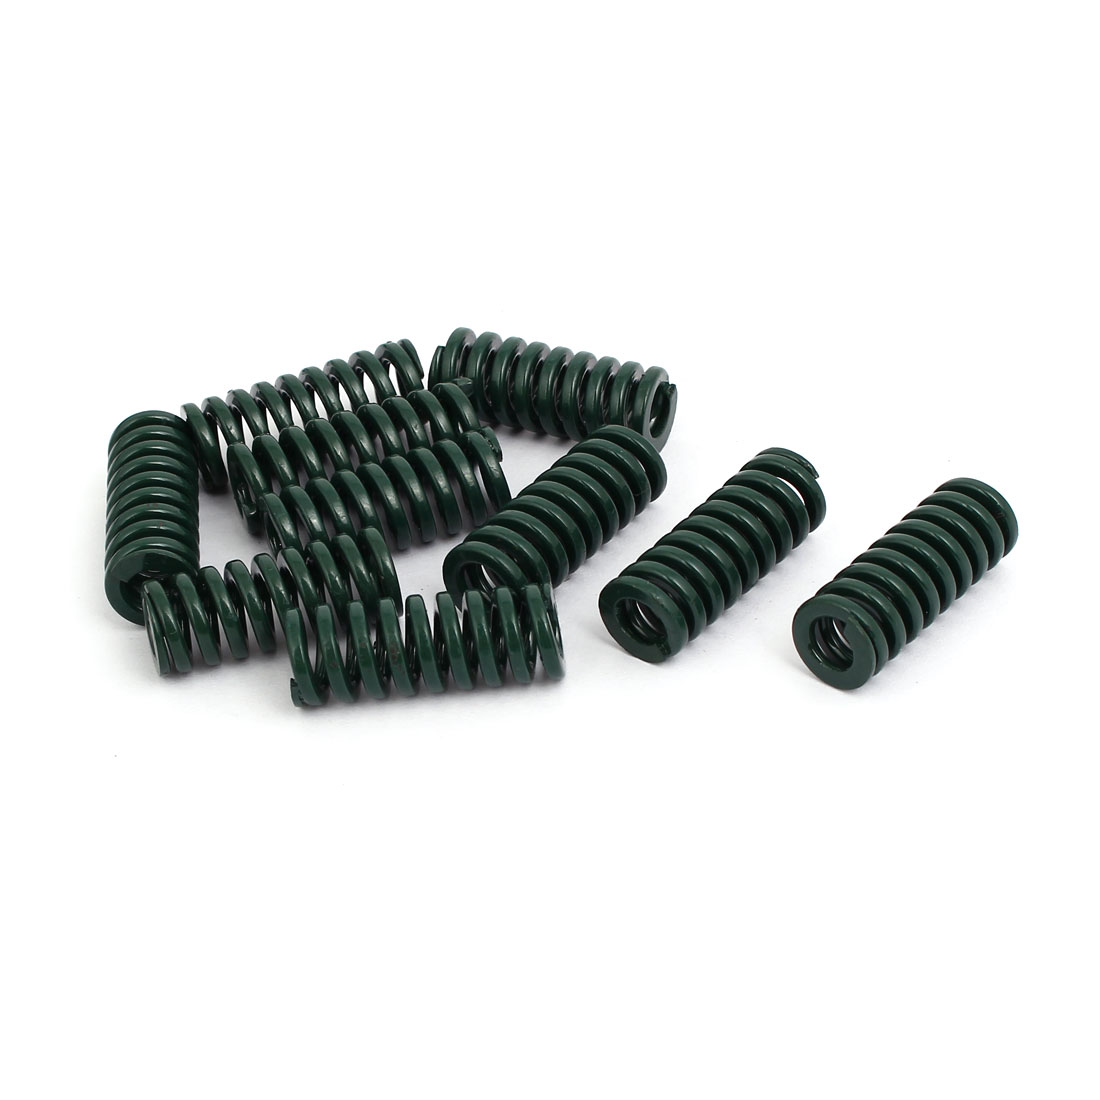 12mm OD 30mm Free Length Heavy Load Compression Mould Die Spring Green 10pcs